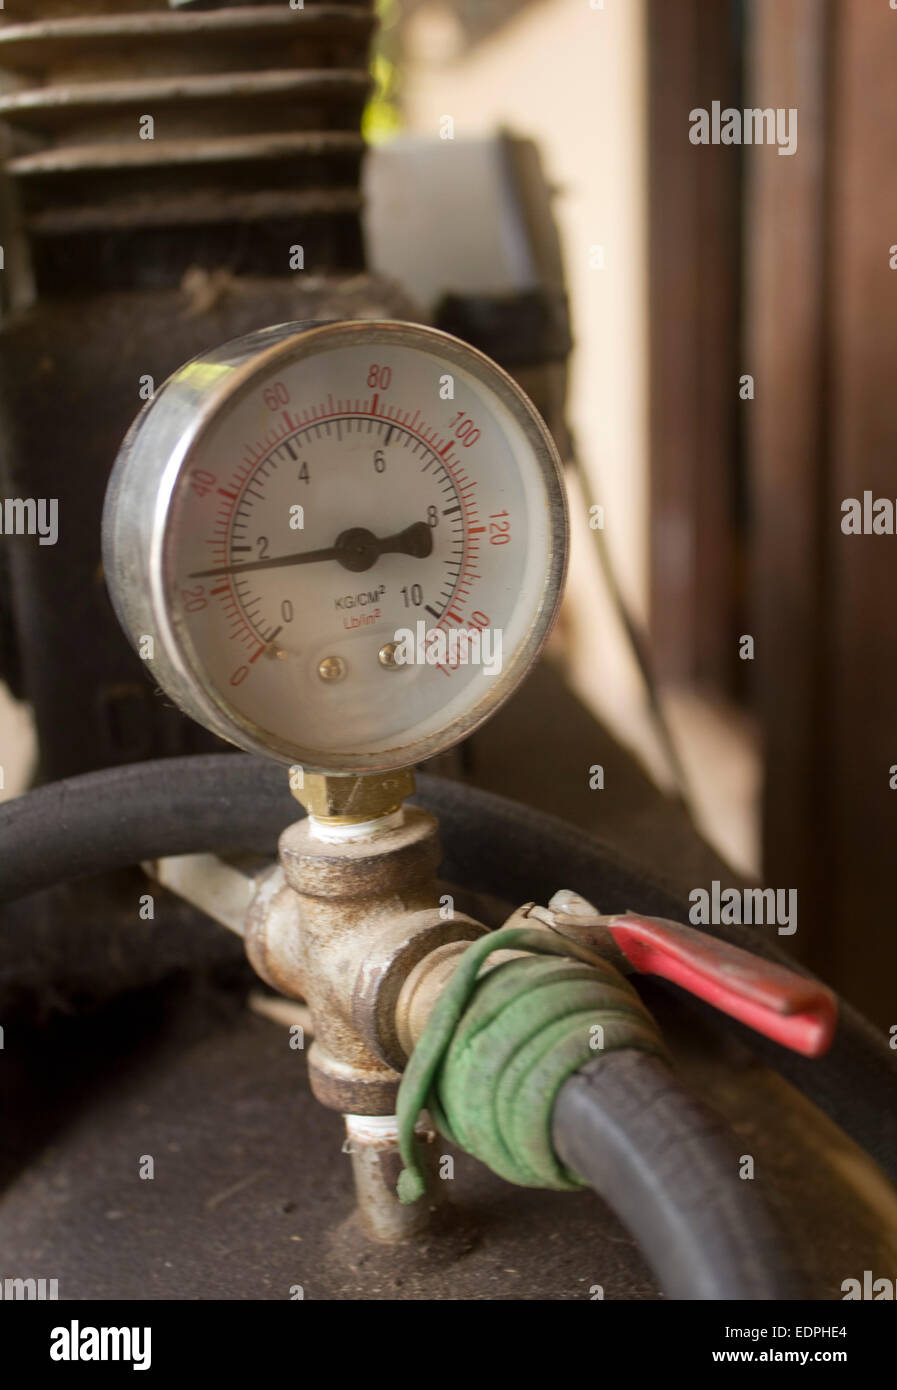 Rusty Air compressor meter - Stock Image